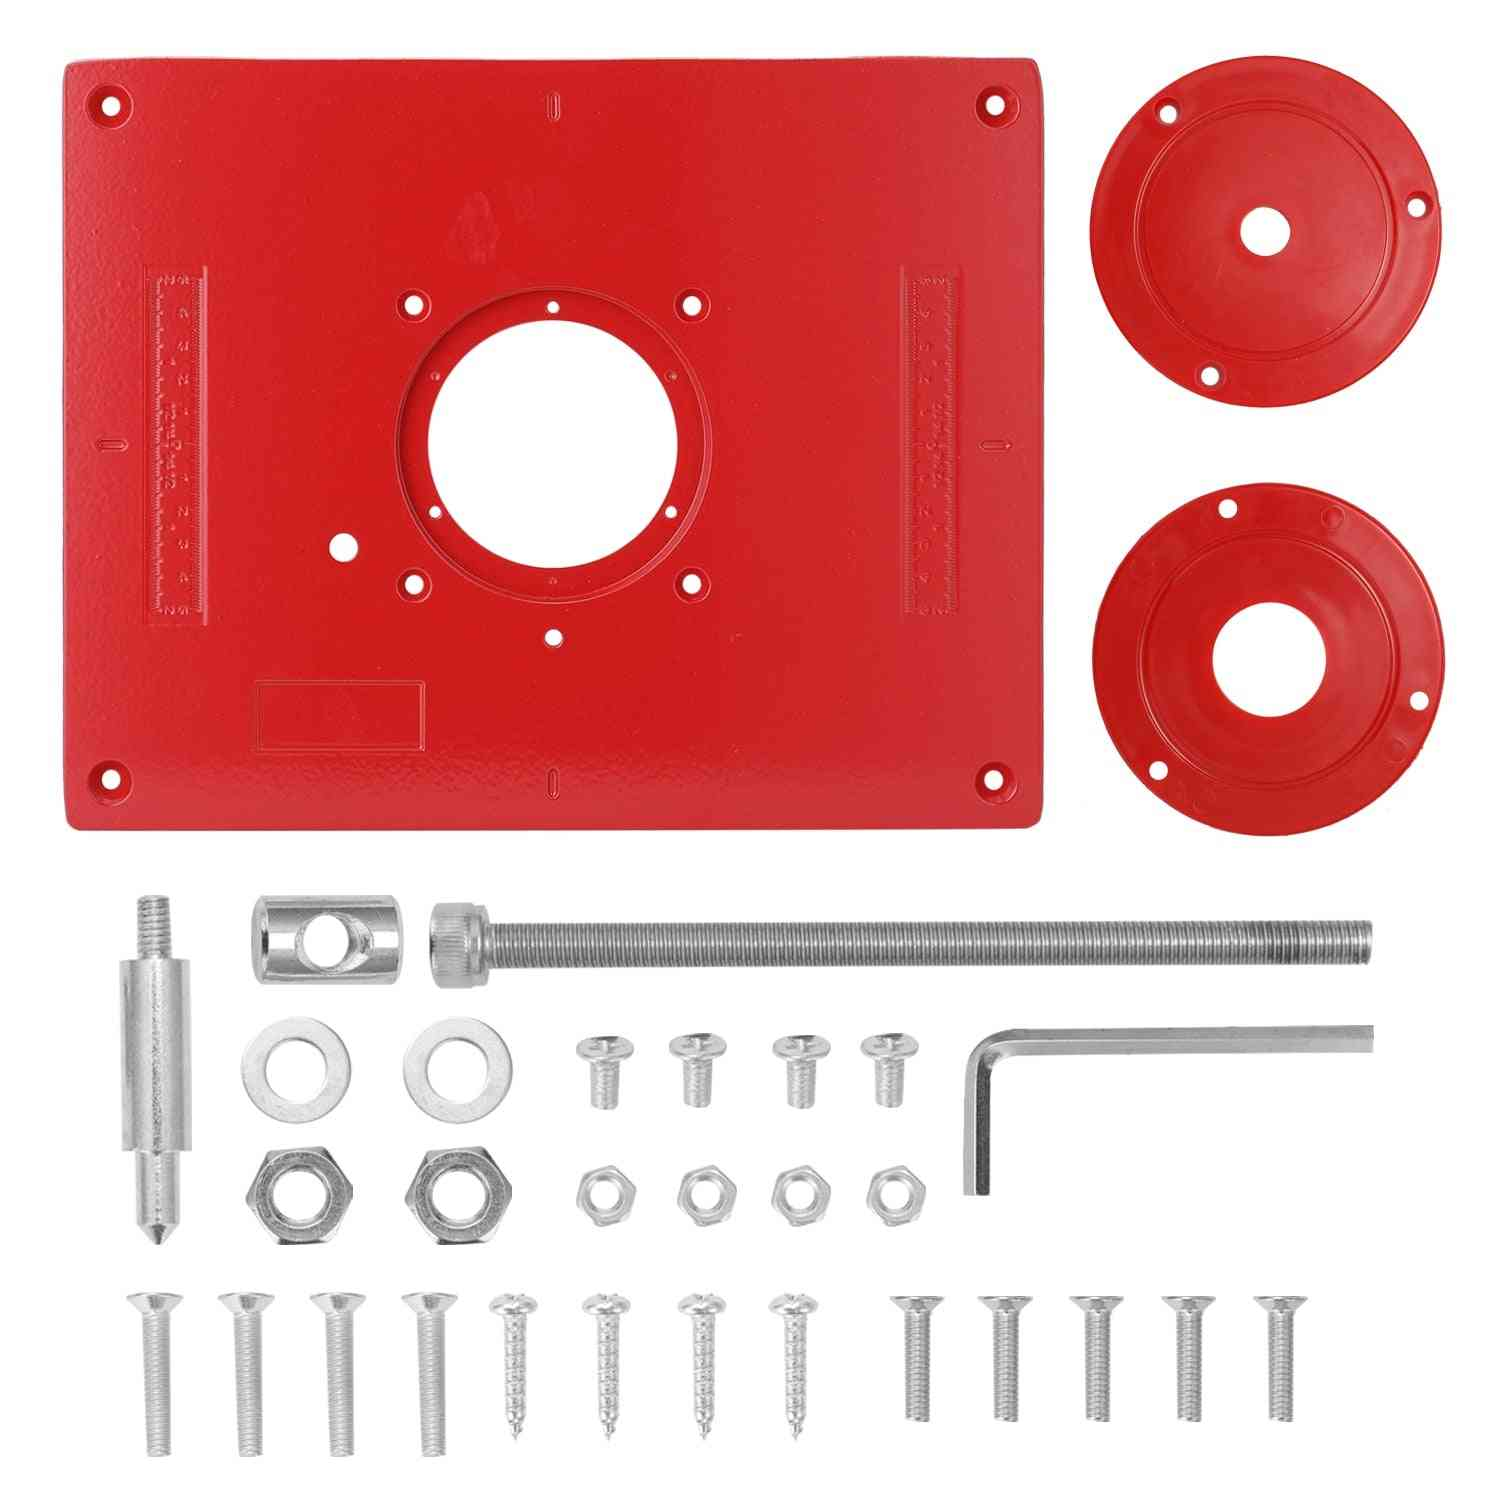 Aluminum Alloy Router Table Insert Plate Tool